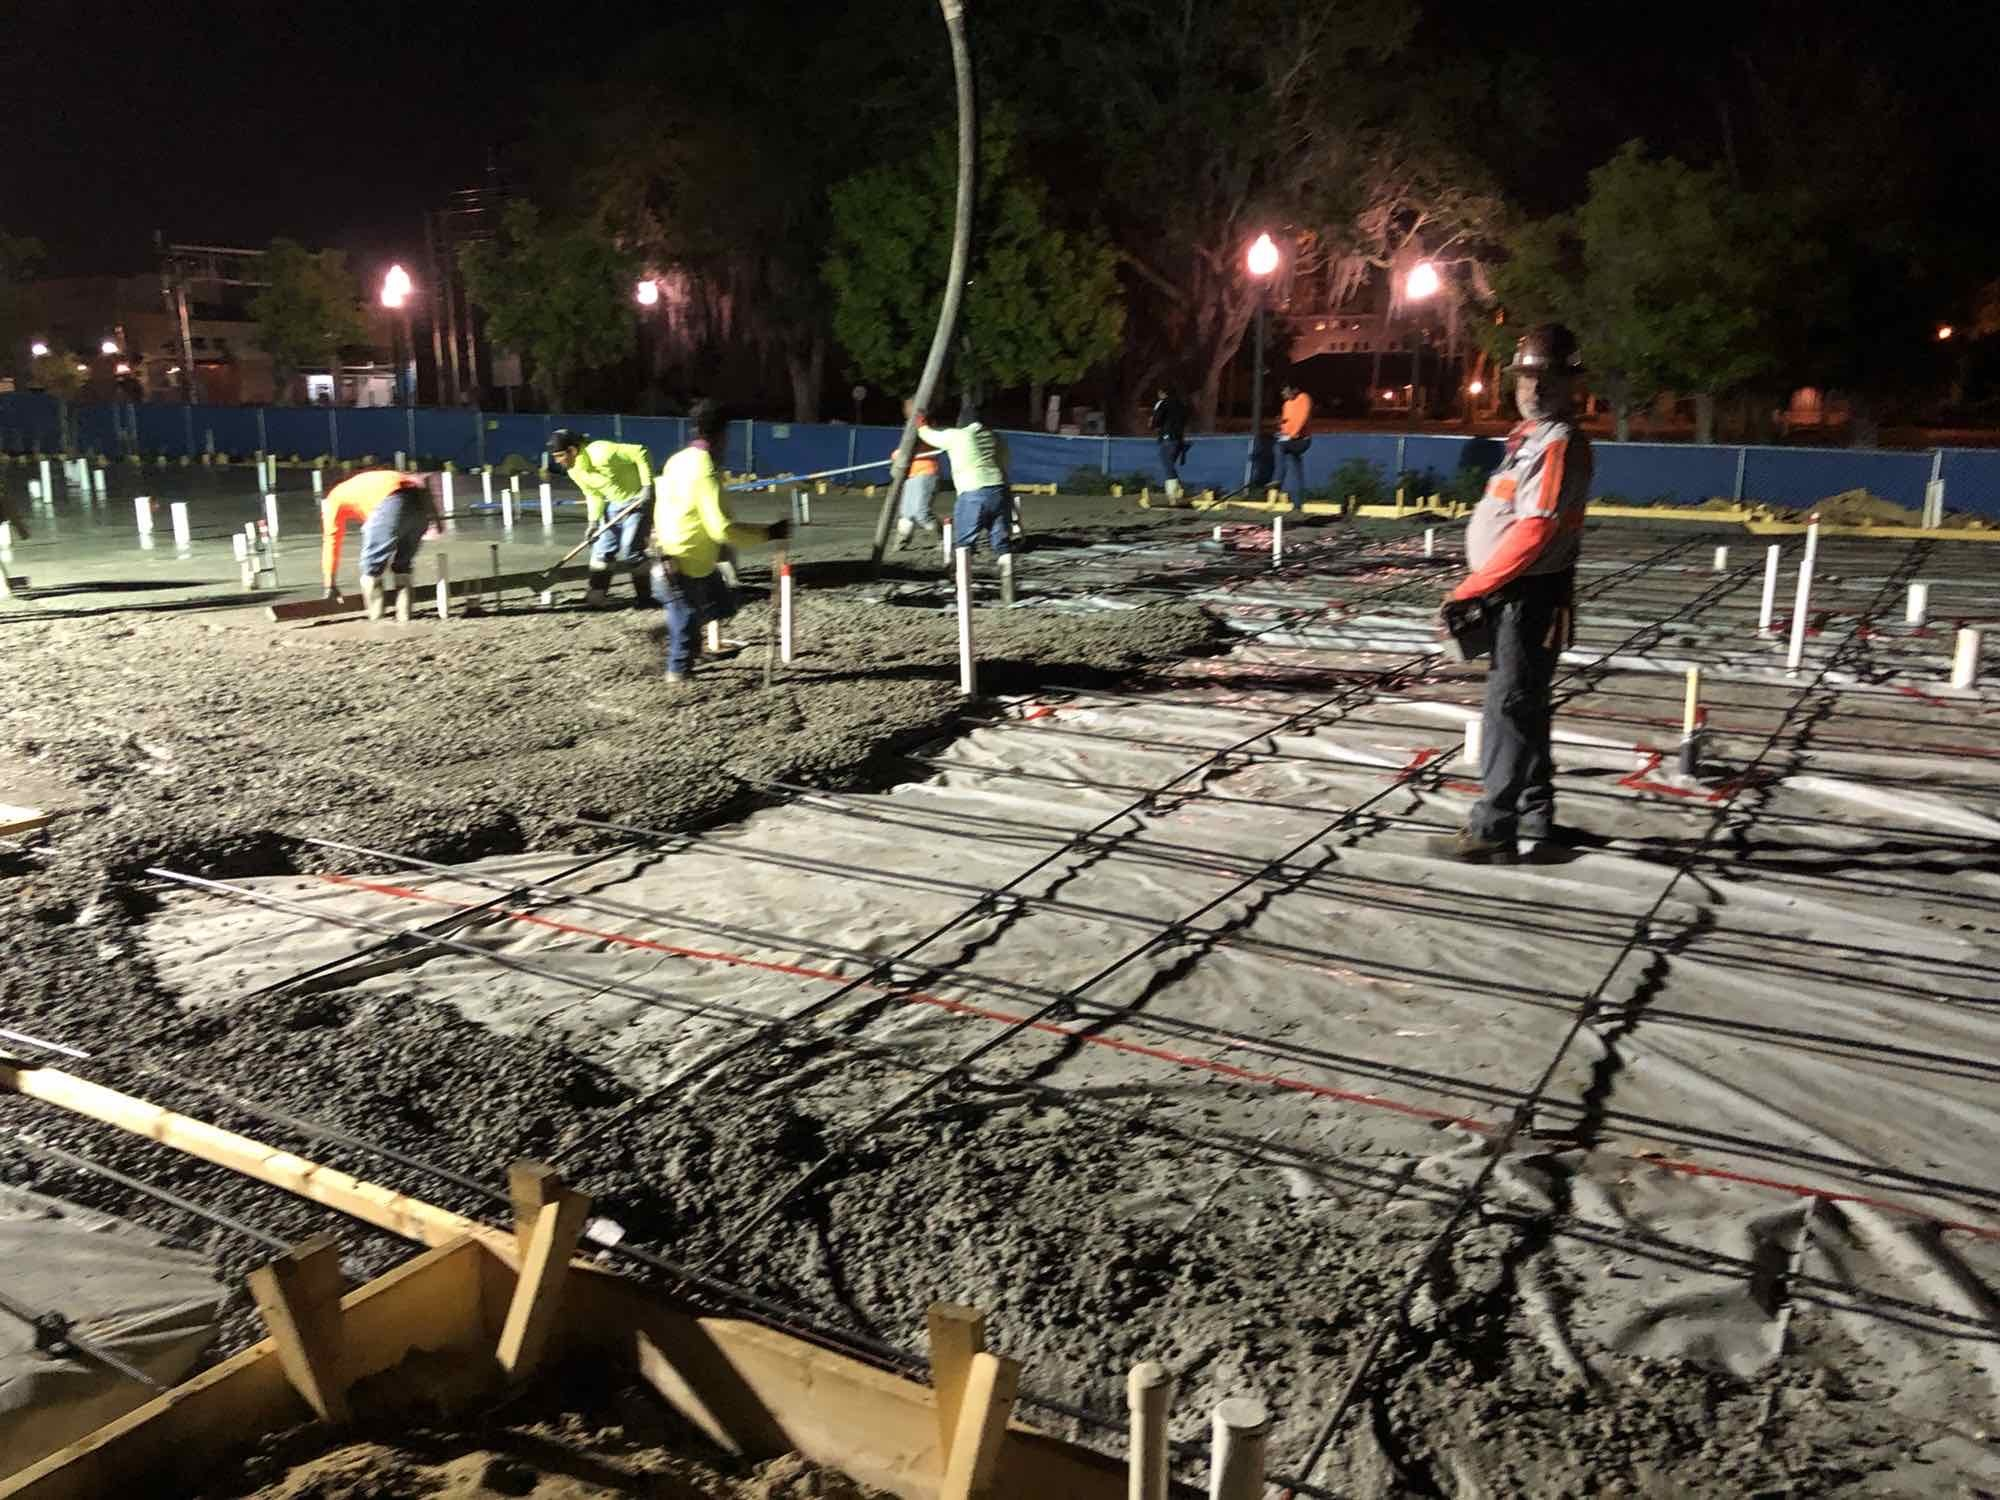 Toho Construction at night, showing workers laying concrete.